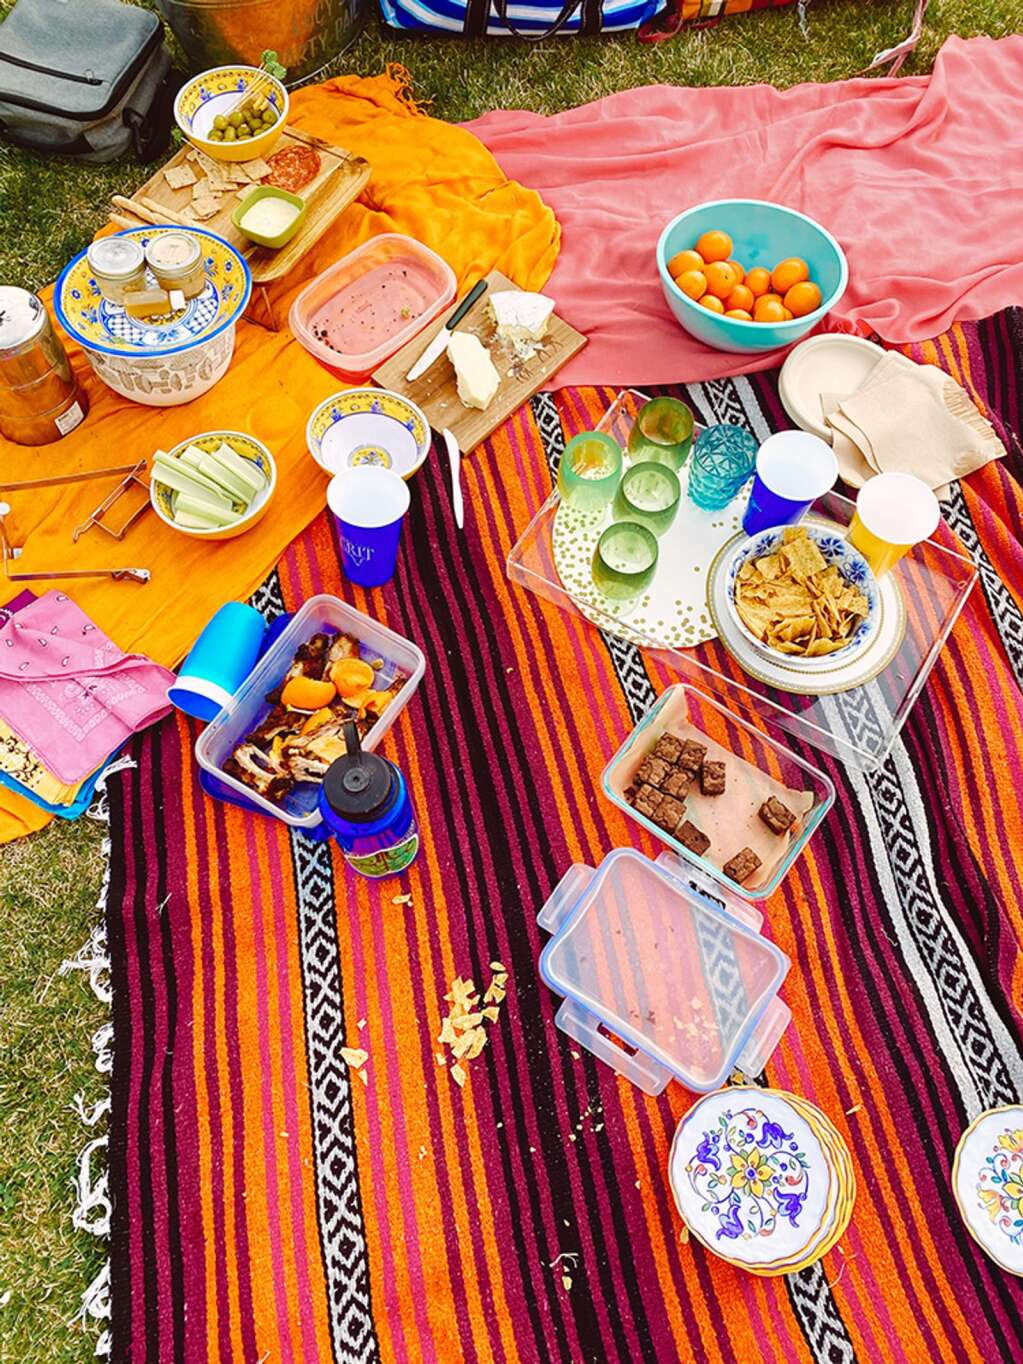 A pretty picnic spread courtesy of the hostess with the mostest, Lucy Lea.